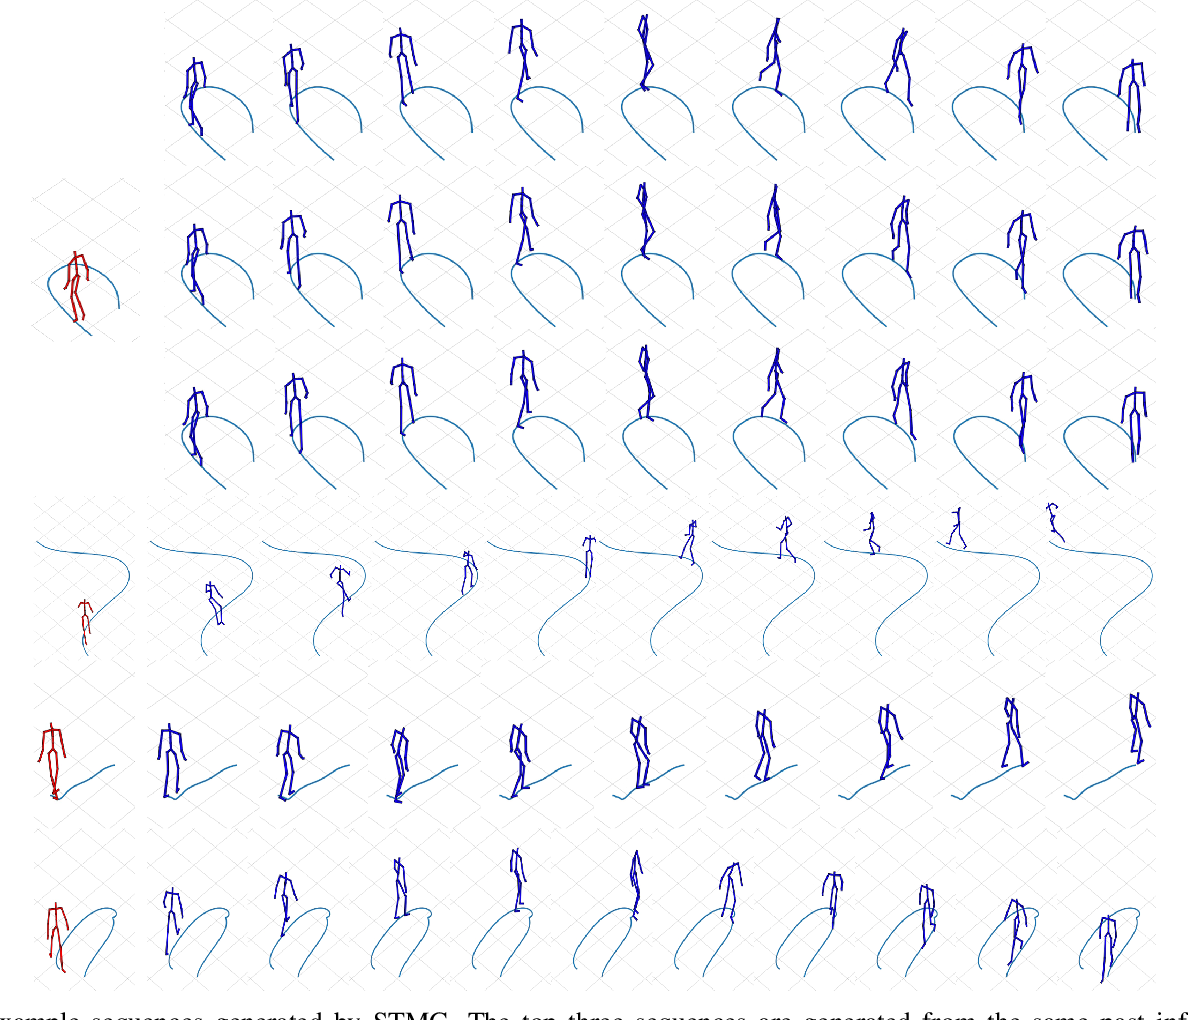 Figure 4 for Graph-based Normalizing Flow for Human Motion Generation and Reconstruction